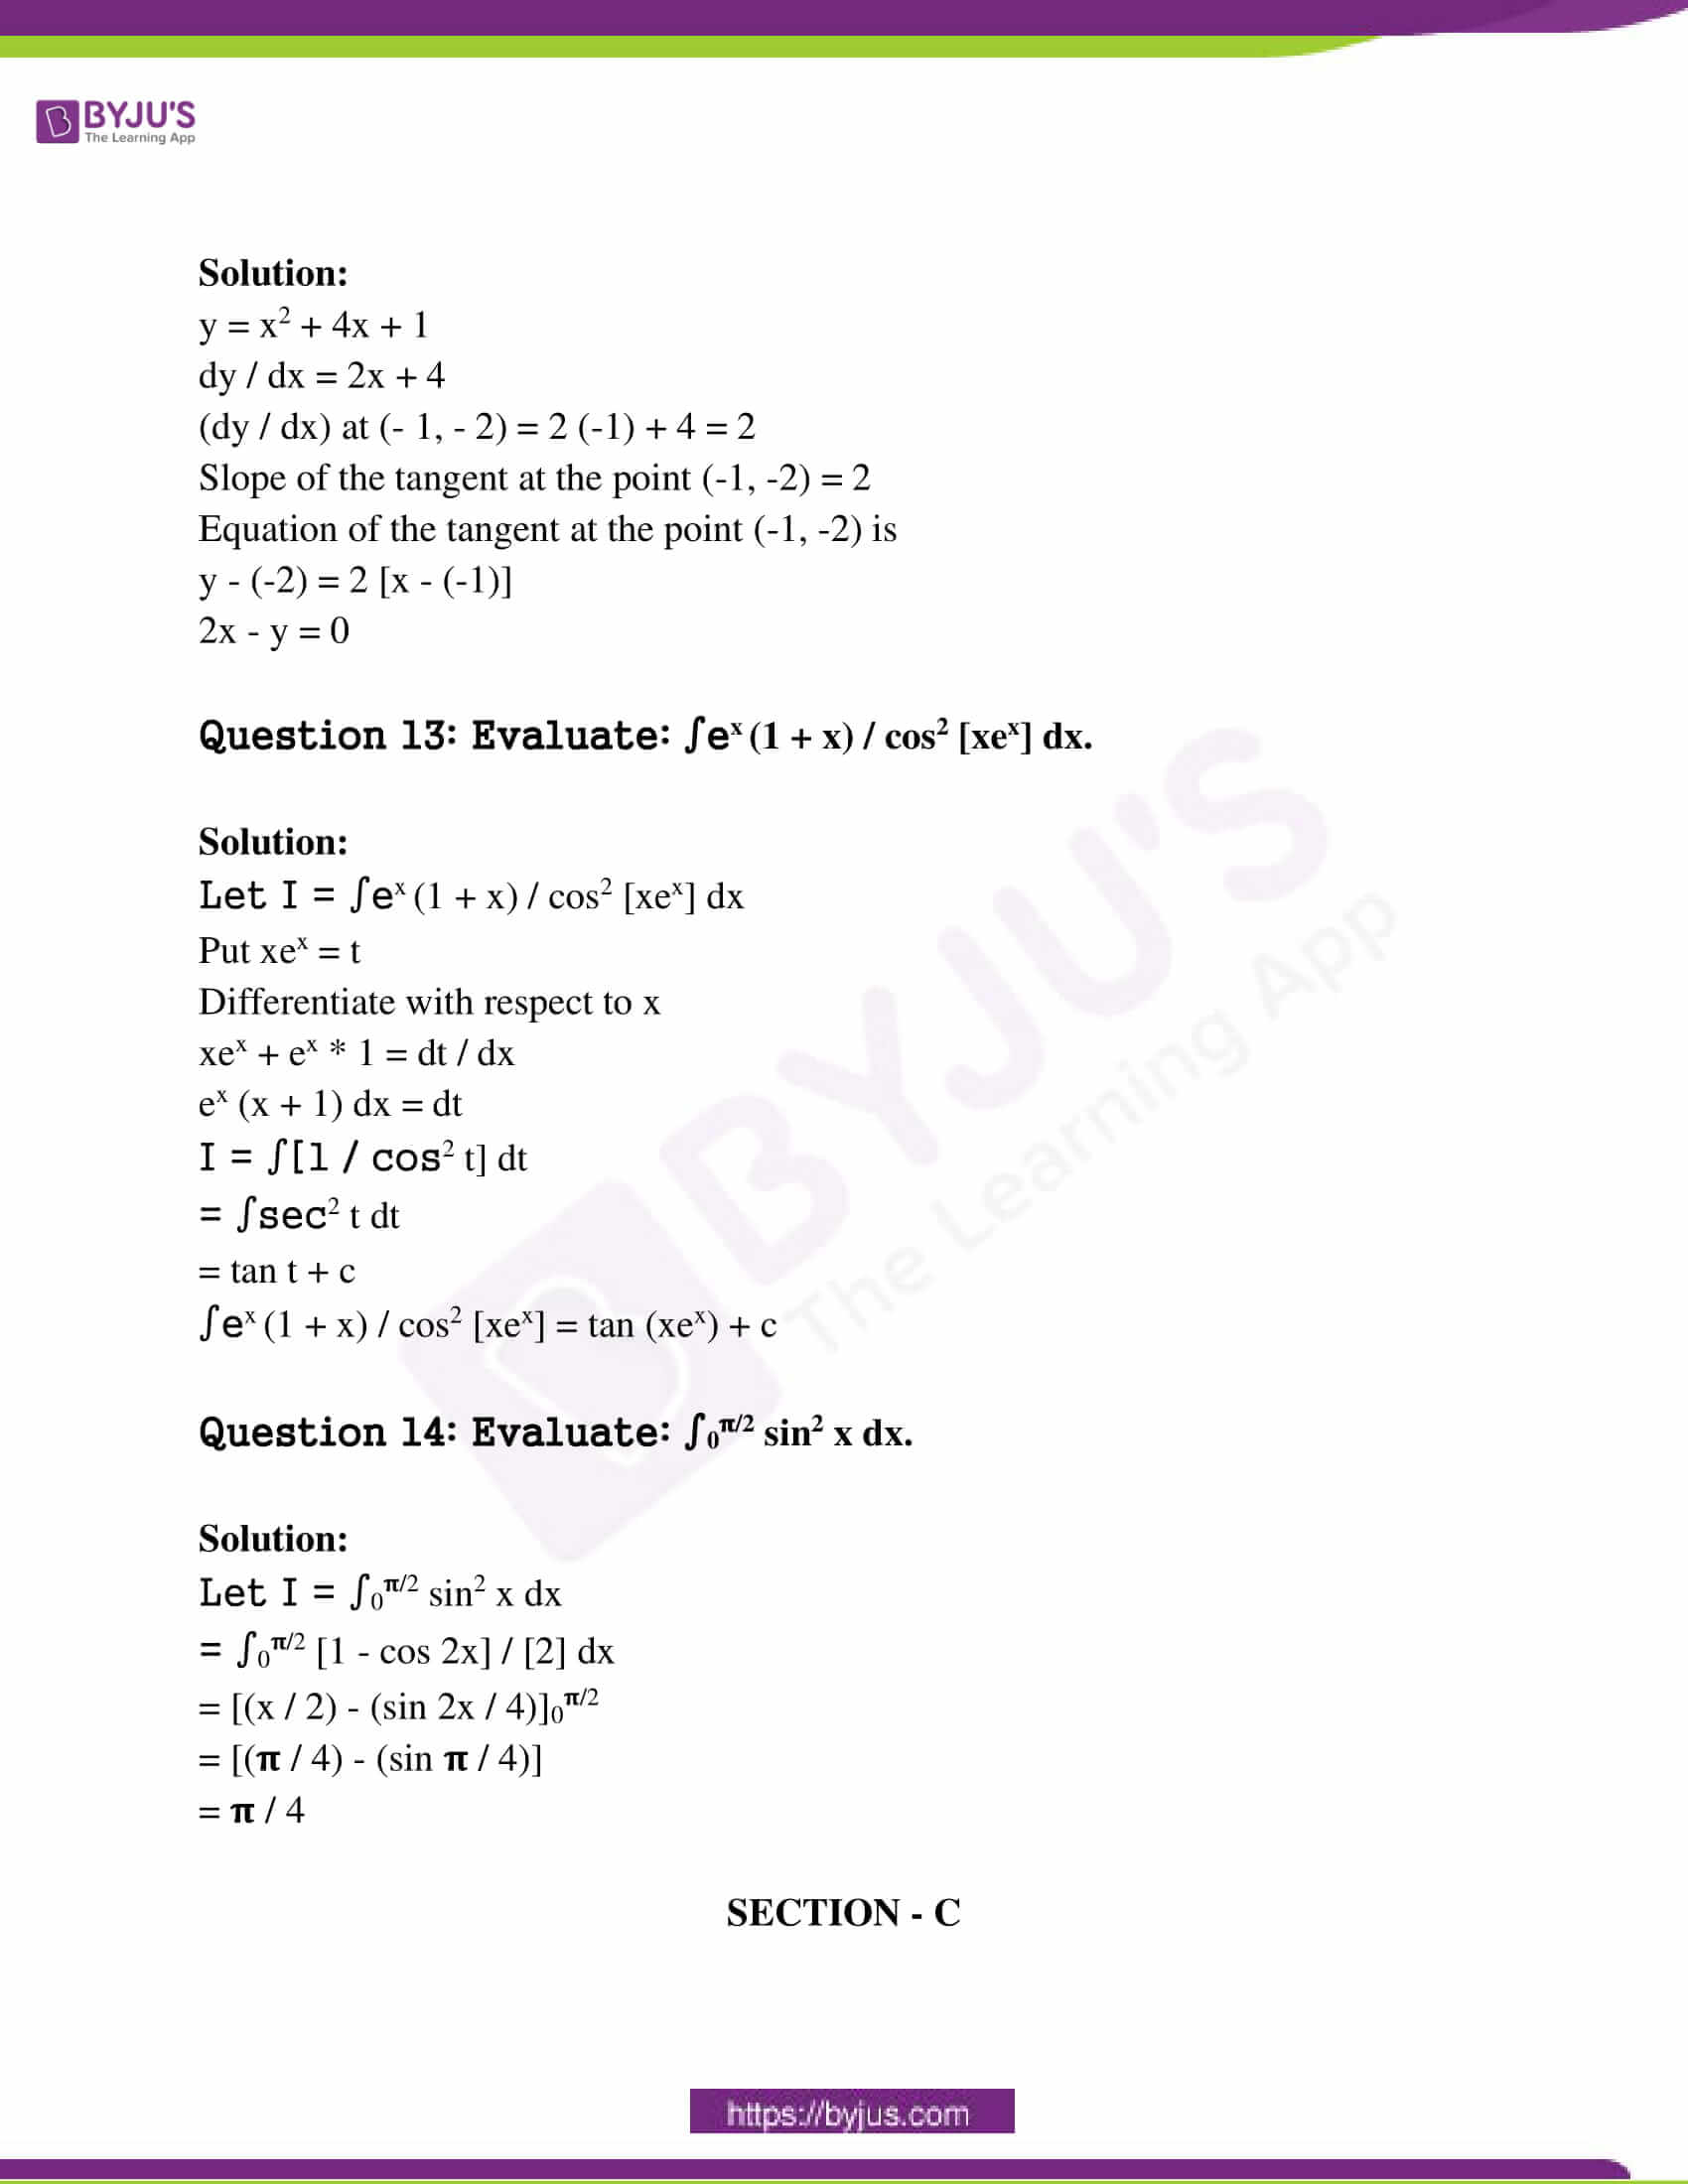 maharashtra class 12 exam question paper sol march 2019 06